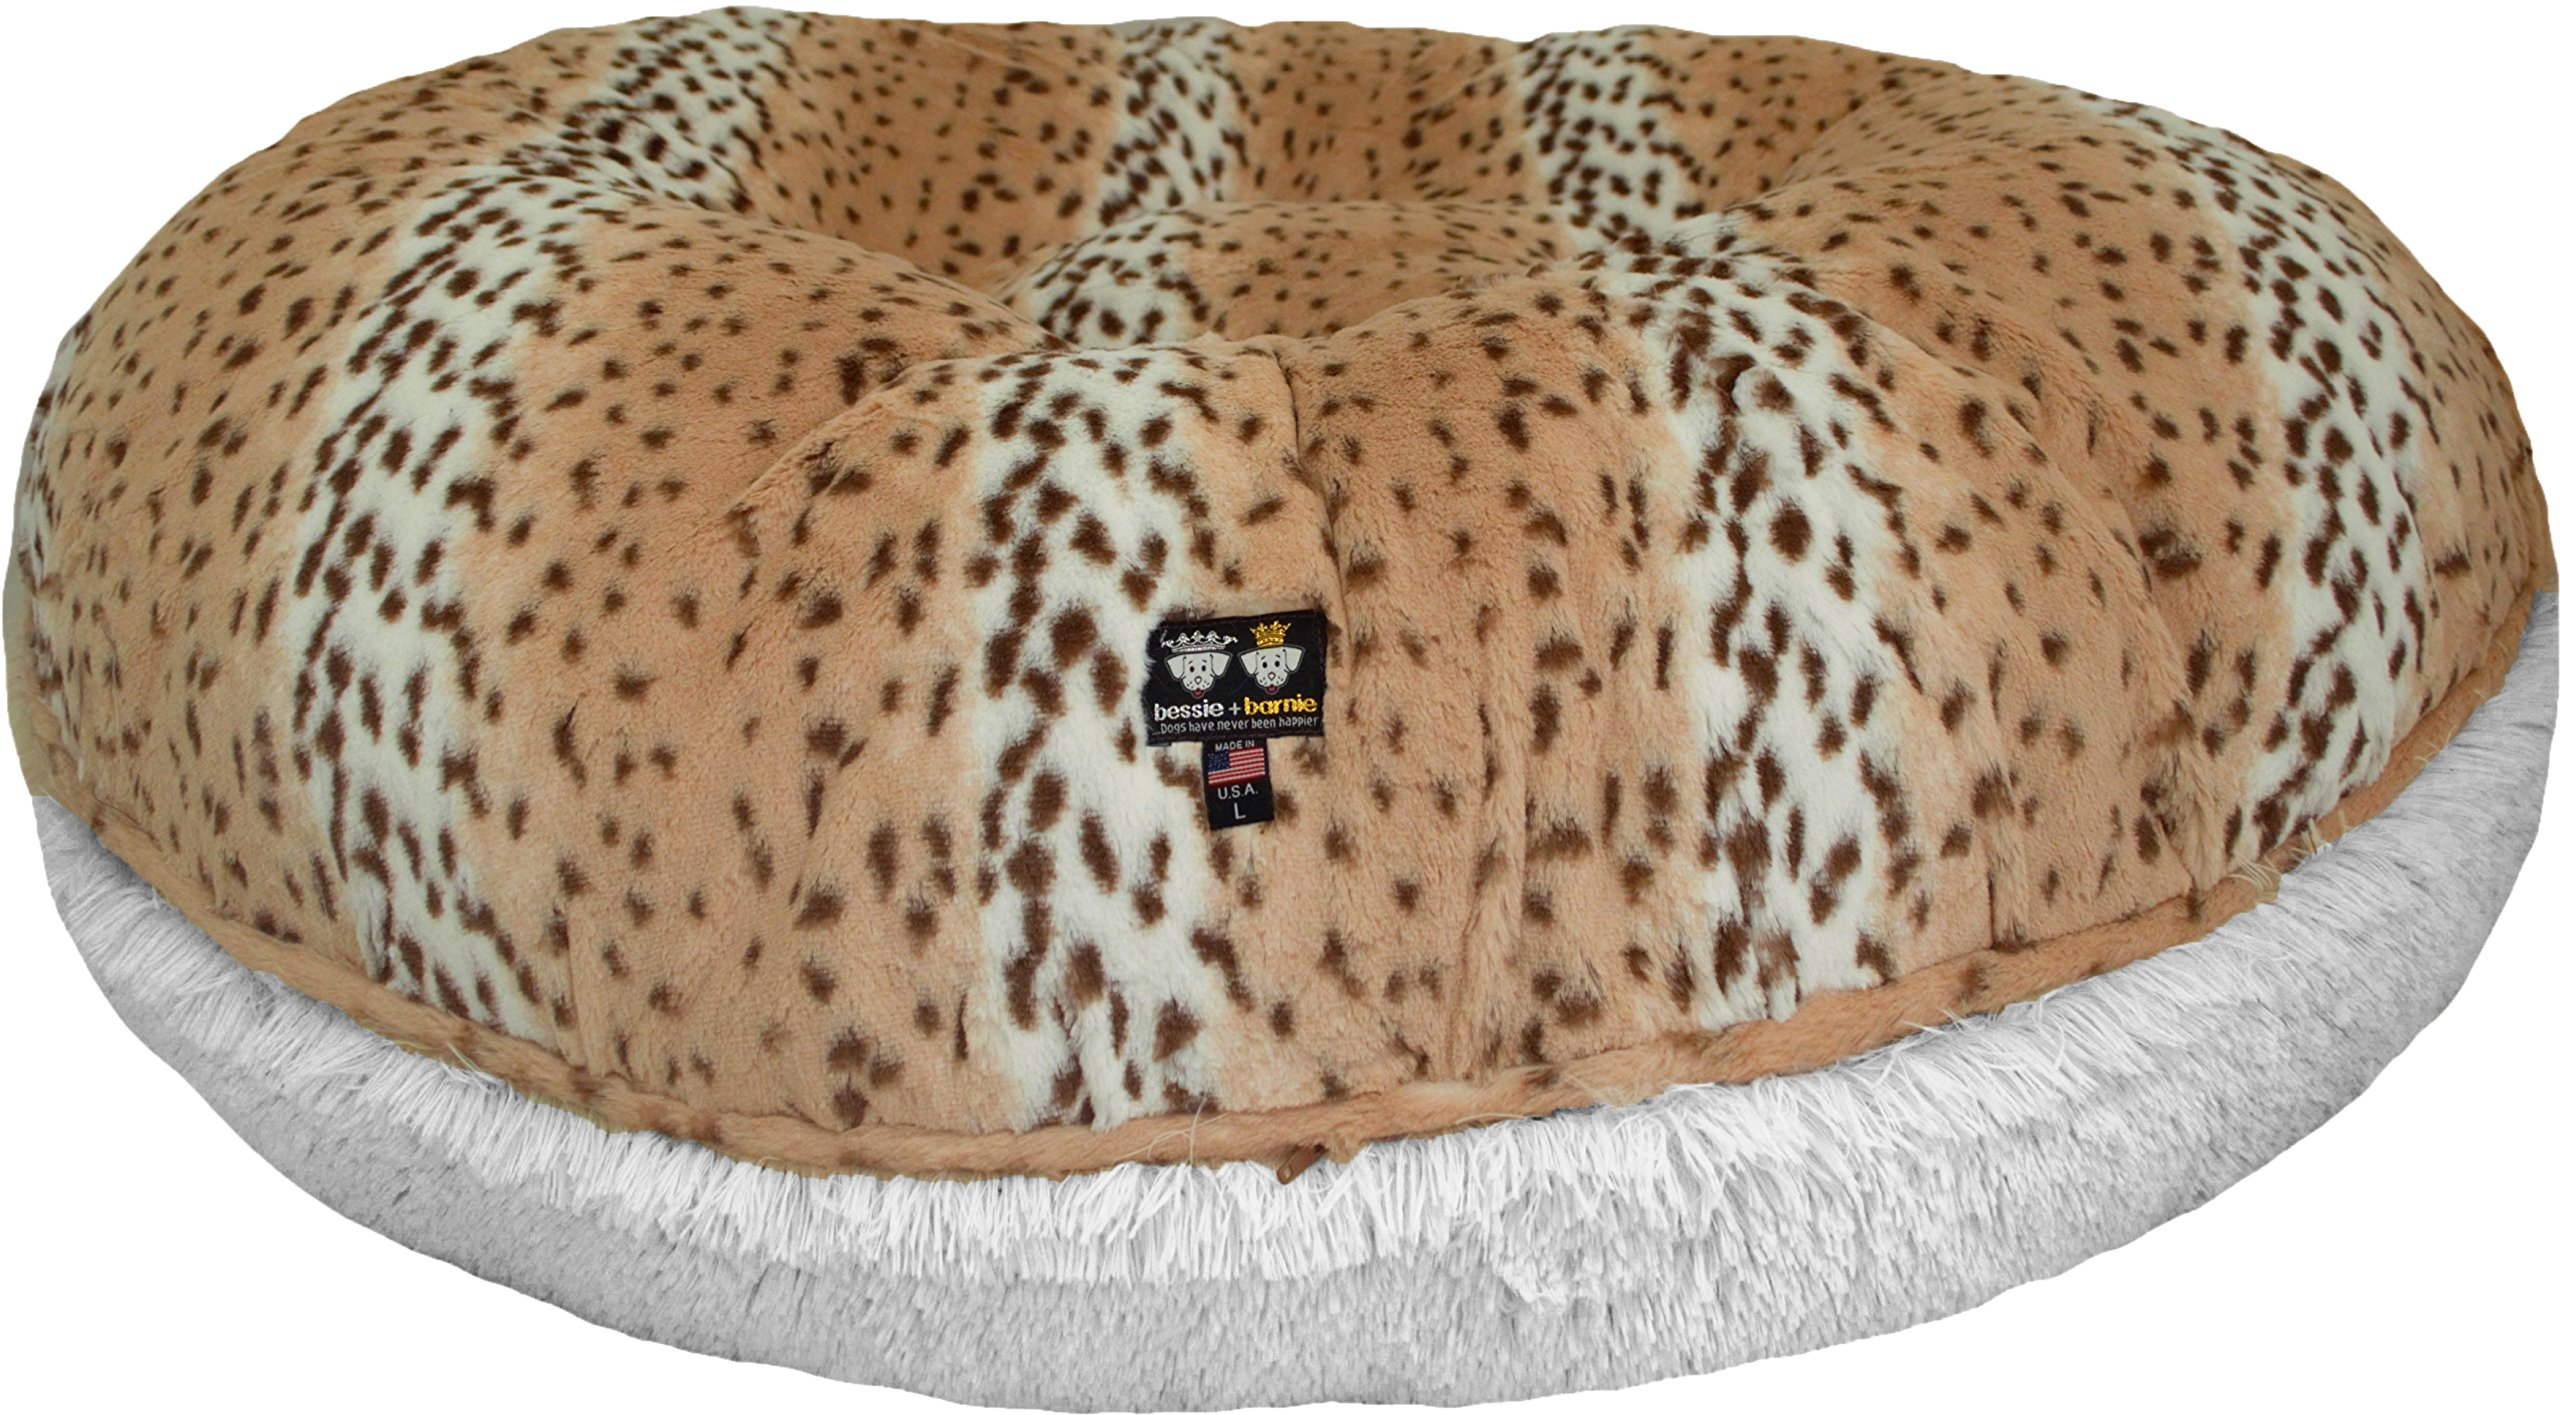 BESSIE AND BARNIE 36-Inch Bagel Bed for Pets, Medium, Snow Leopard/Snow White